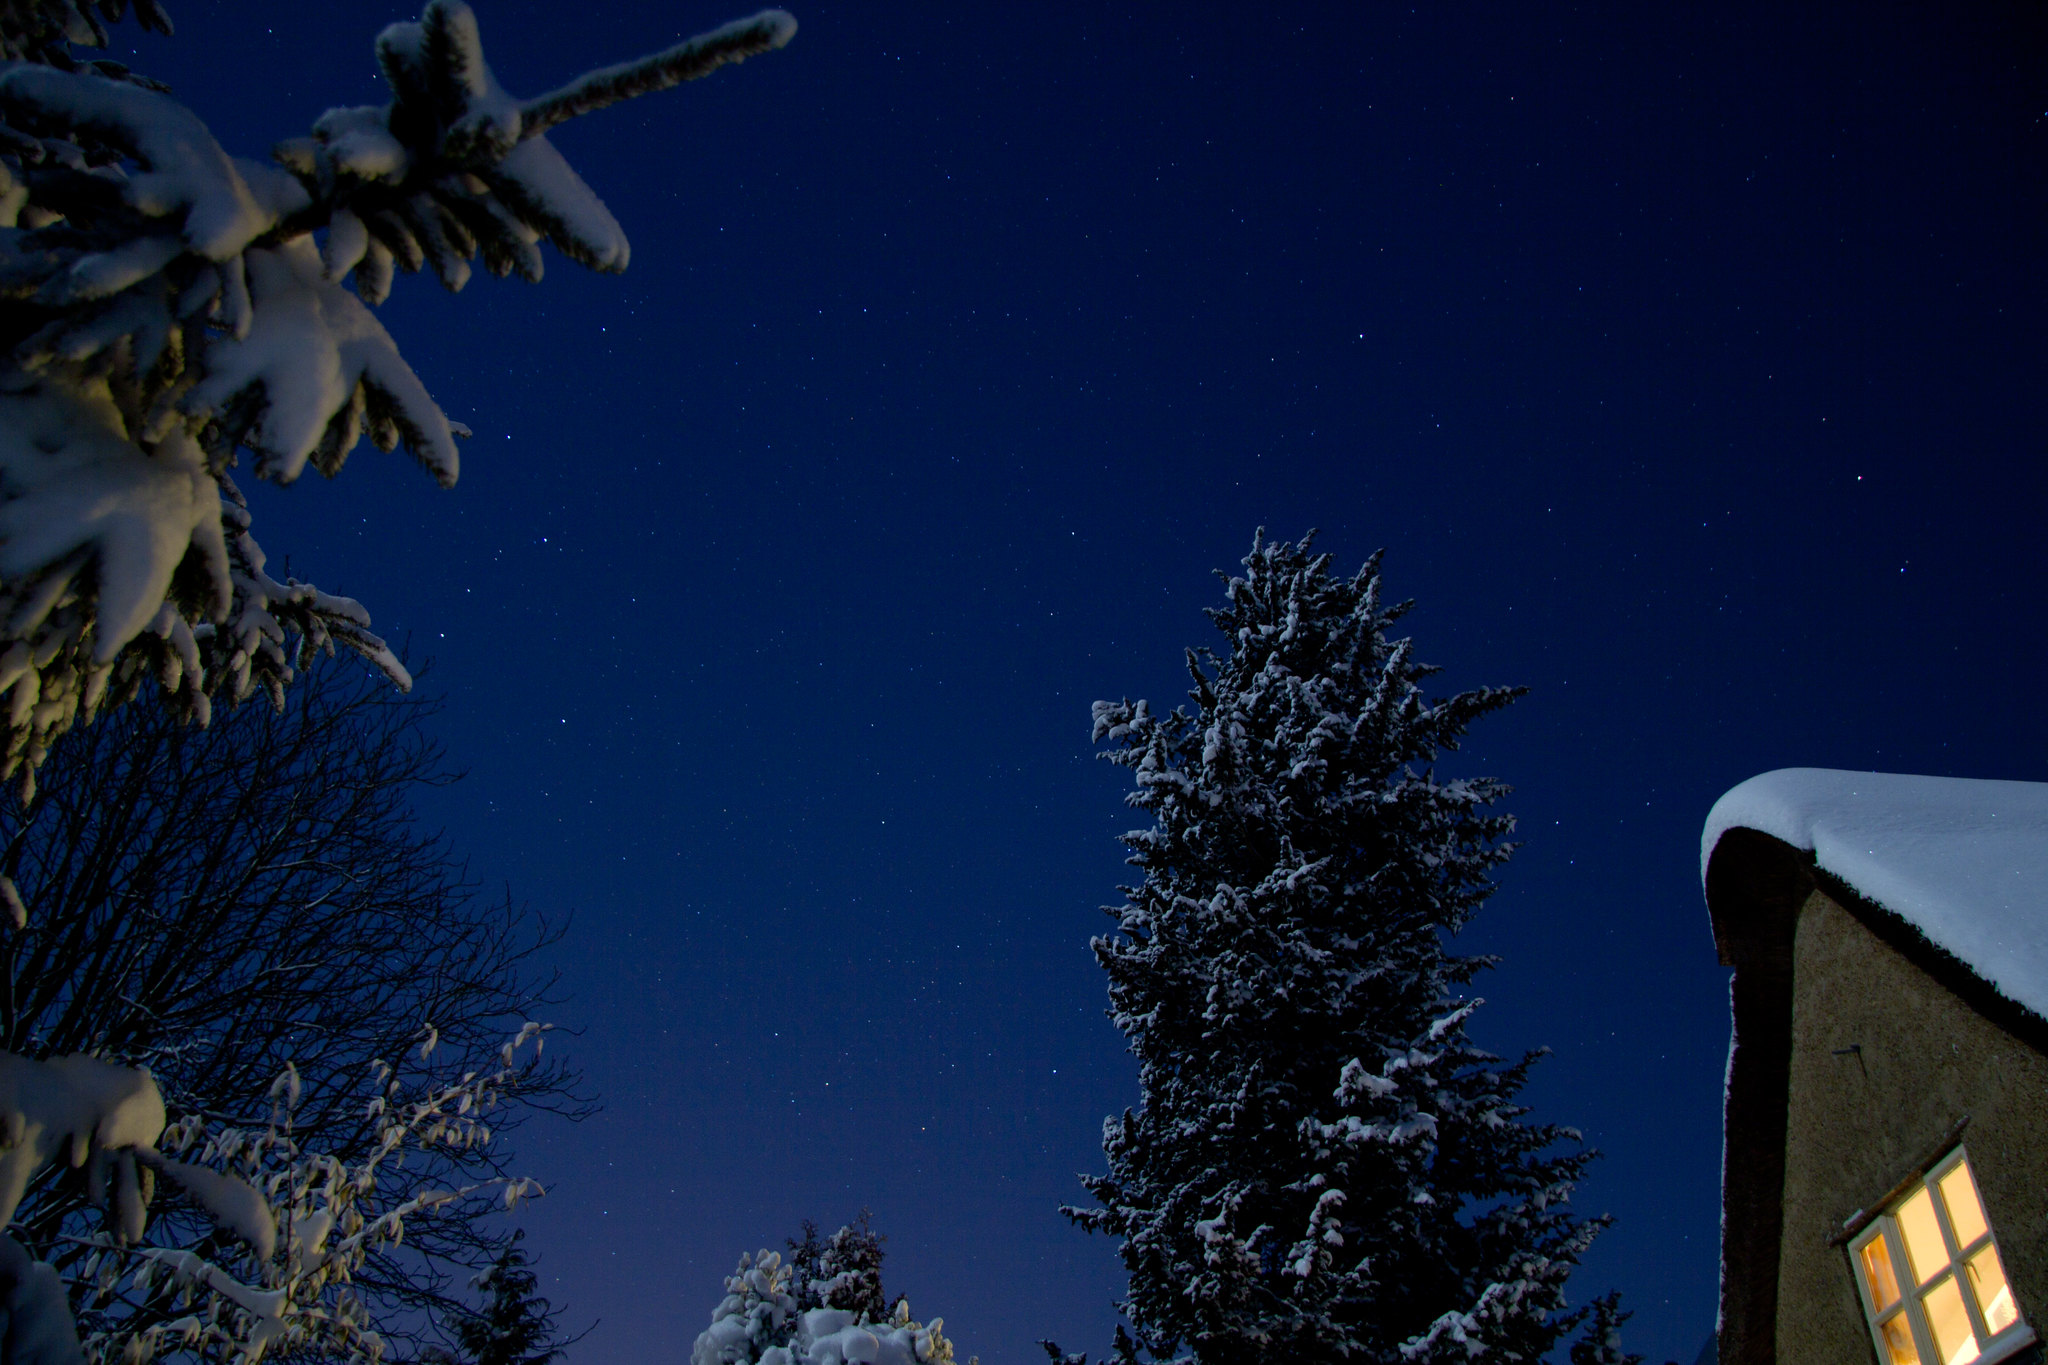 A night sky, with snow-covered evergreen trees and roof gable visible on the edges